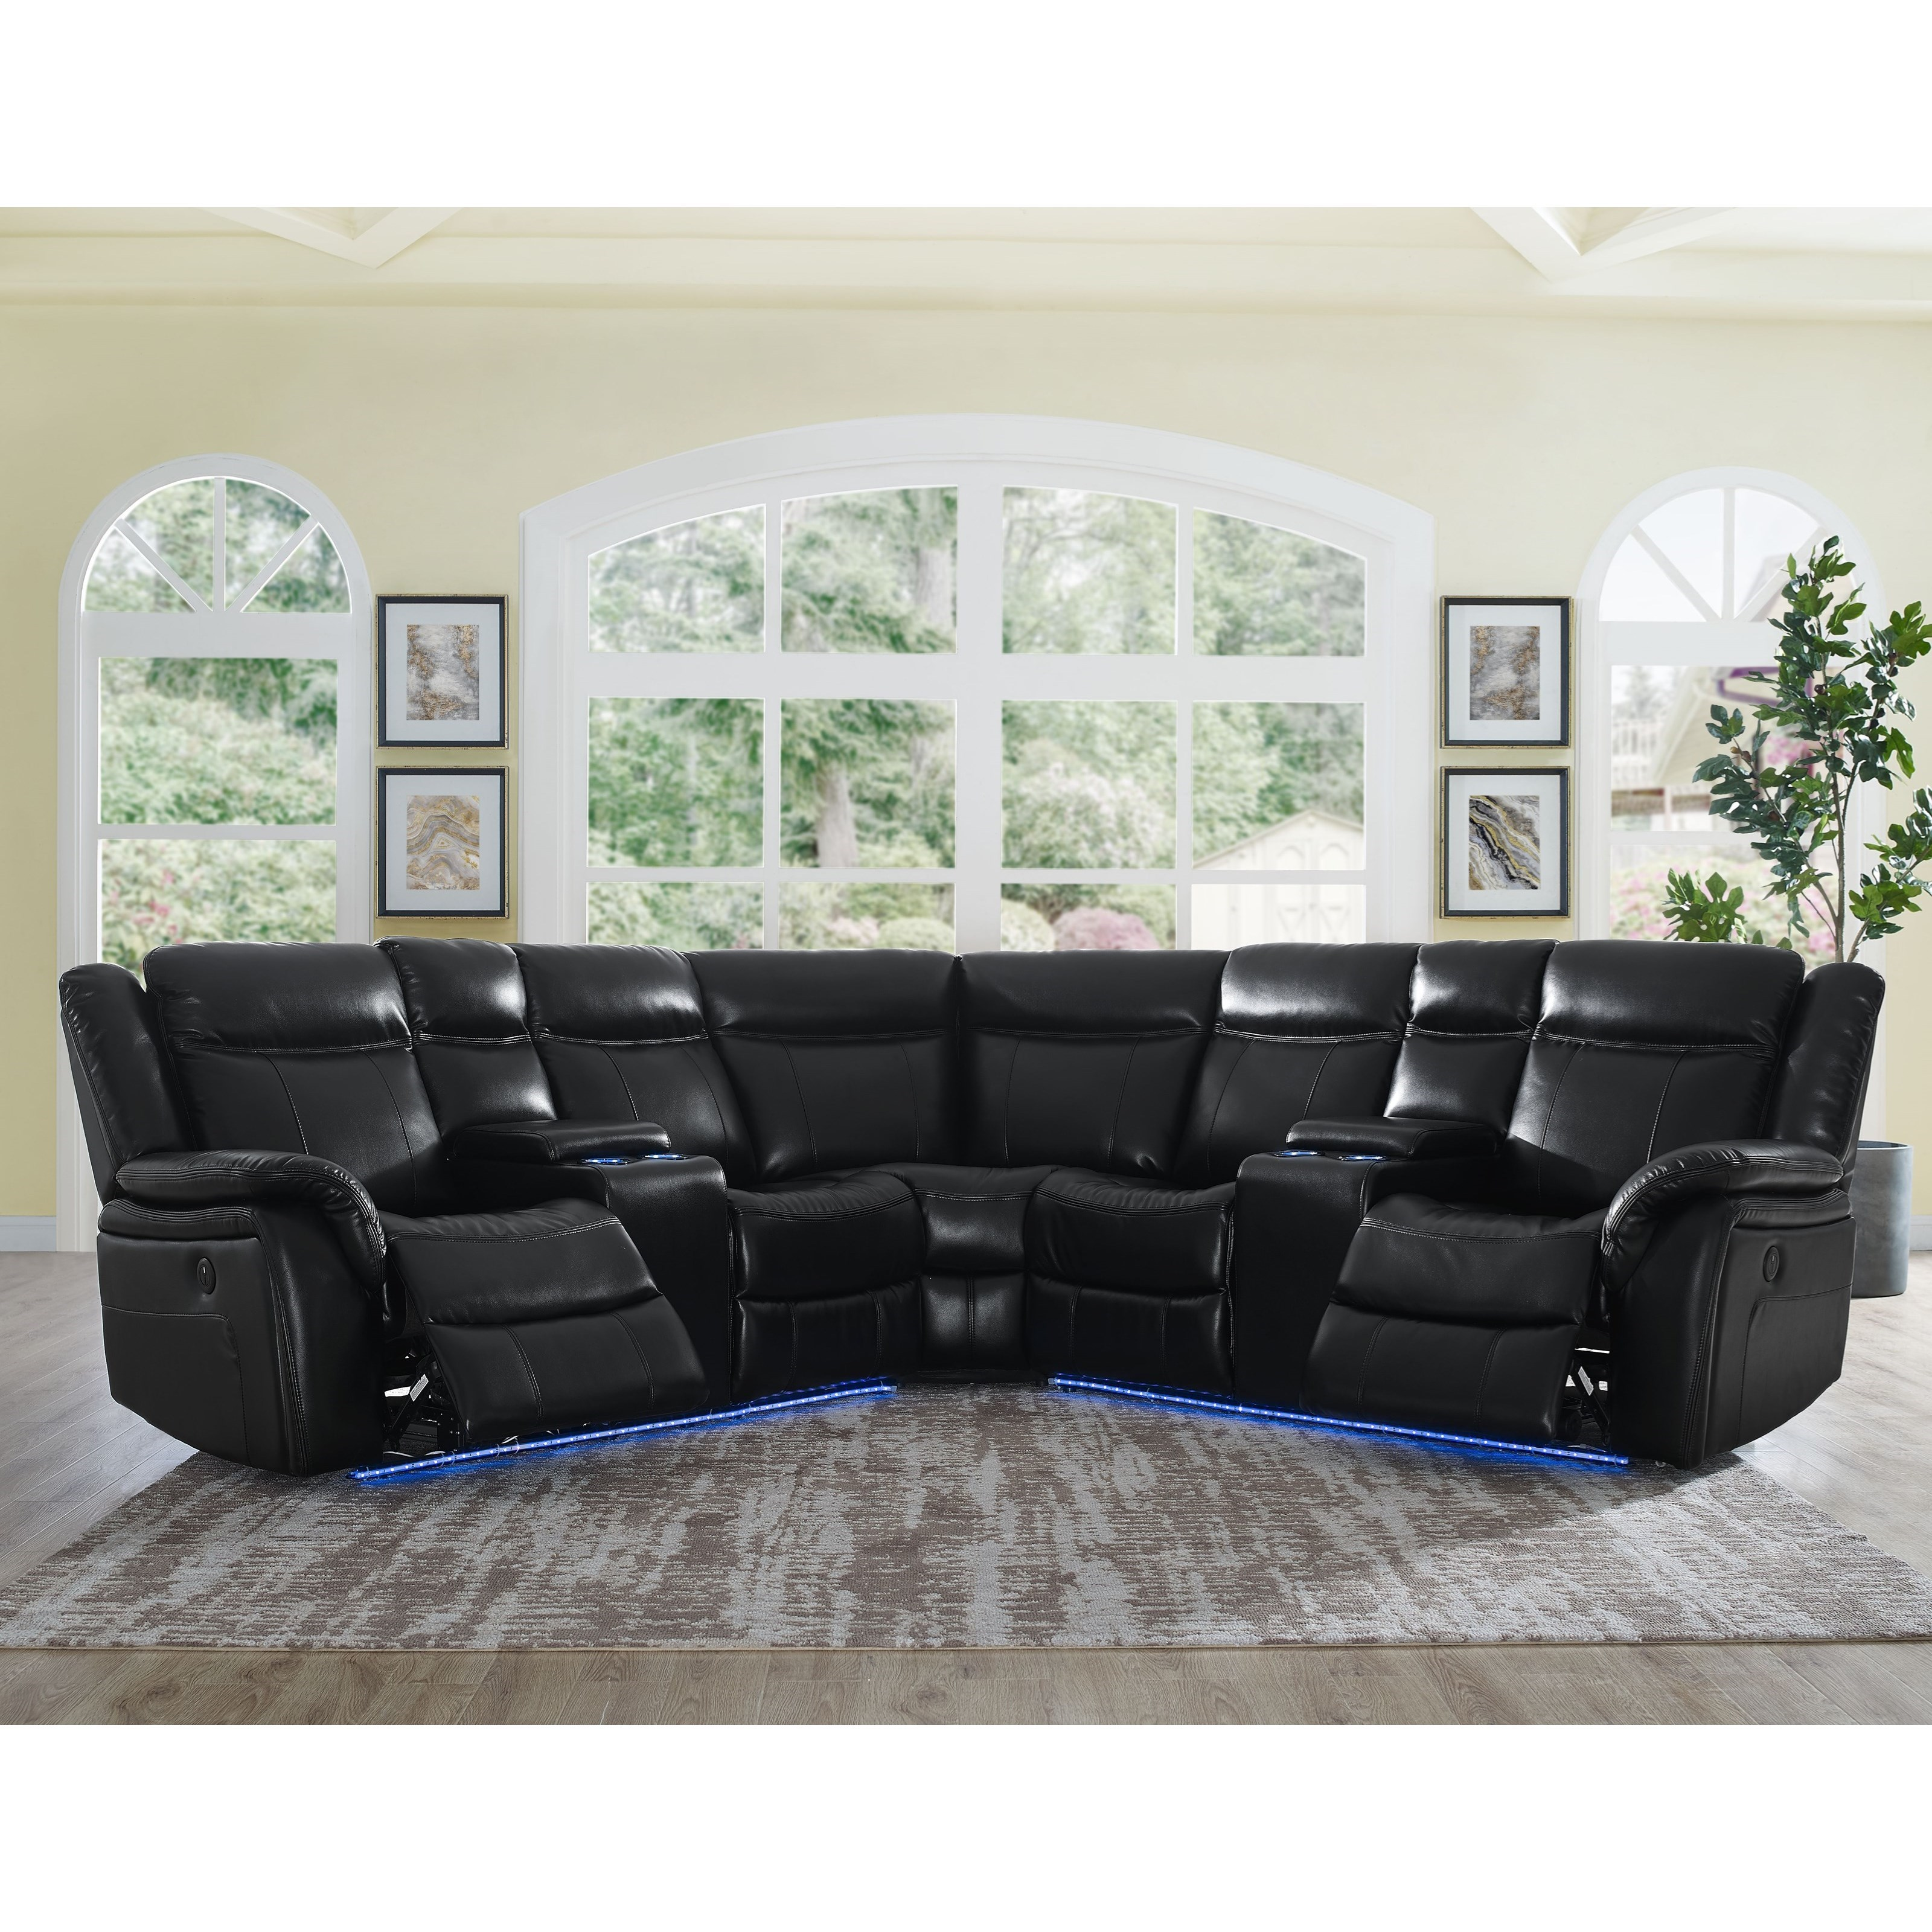 Steve Silver Levin 4 Seat Power Reclining Sectional Sofa